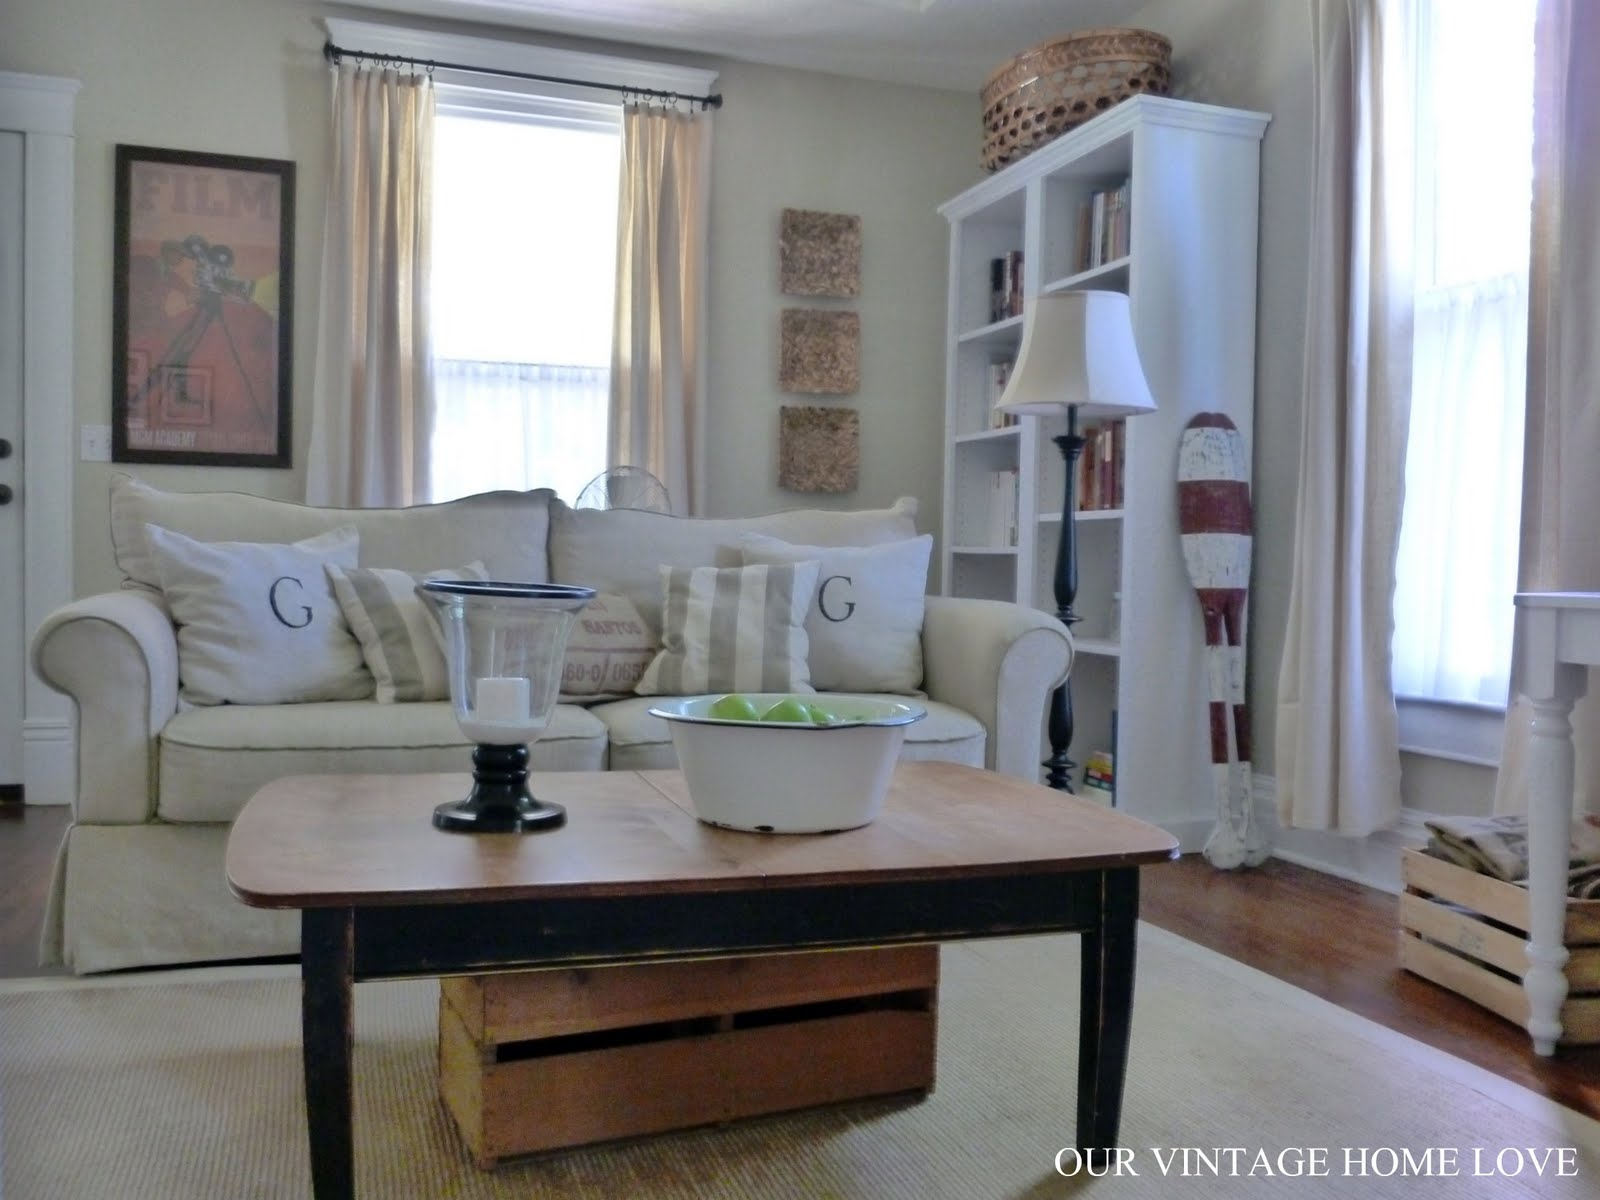 our vintage home love Living Room Ideas and a New Desk